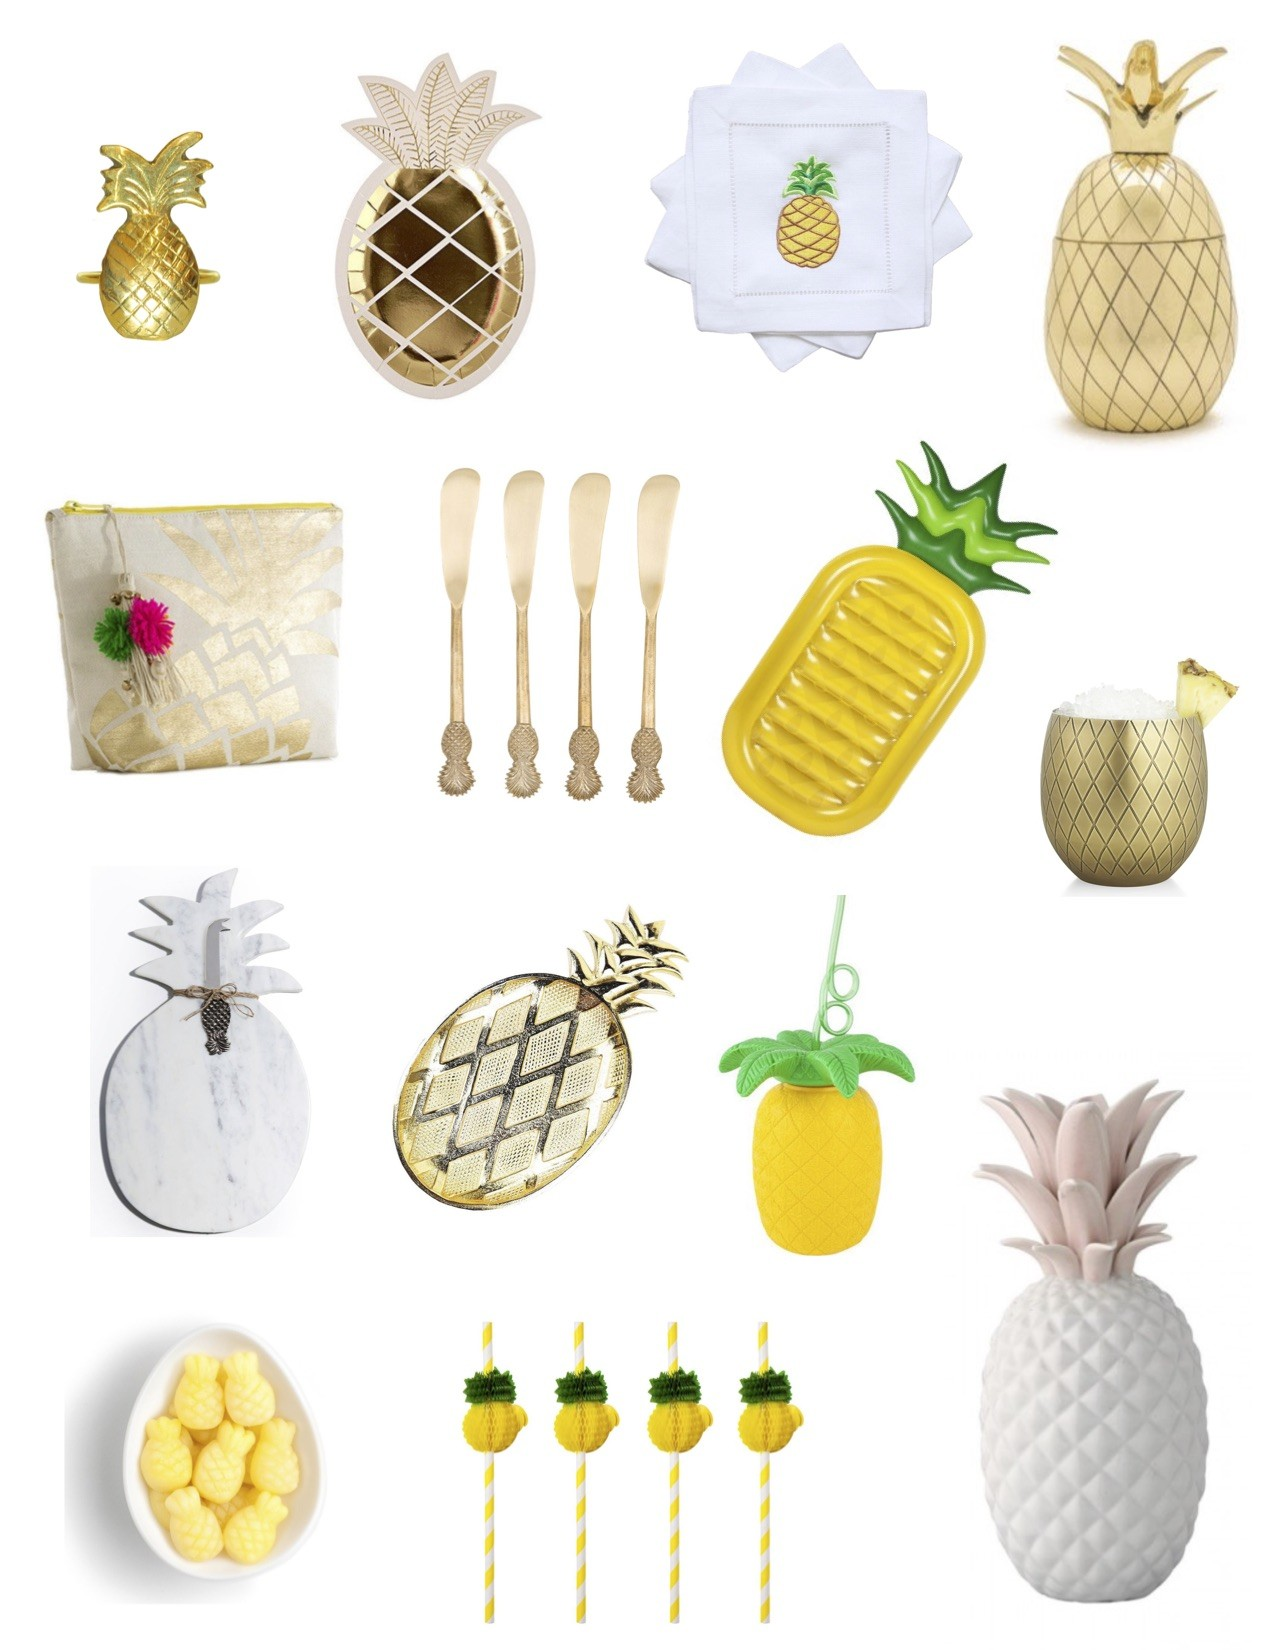 Pineapple Accessories the every hostess - pineapple party - the every hostess